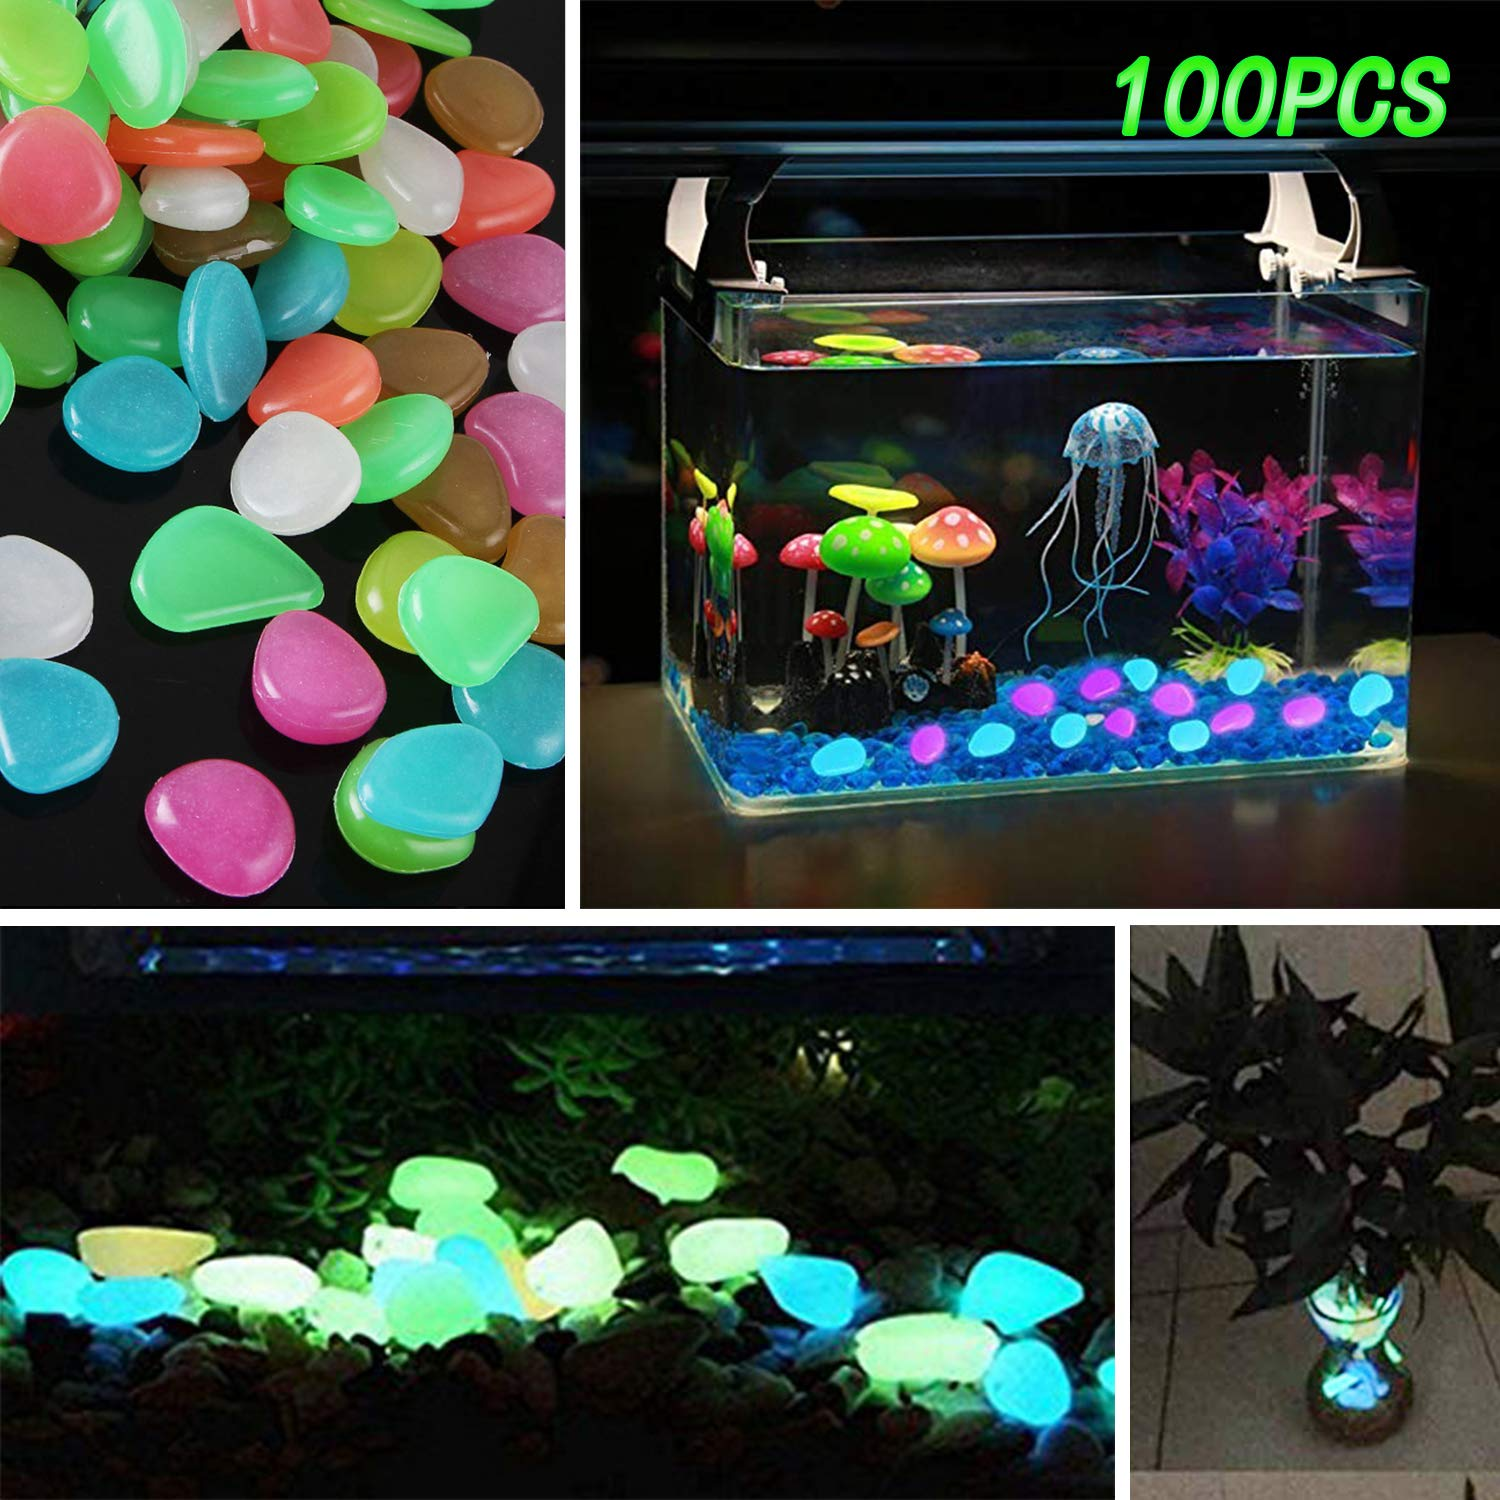 Sumyer Glow in the Dark Pebbles, Luminous Pebbles Glow Stones Artificial Colored for Aquarium, Fish Tank Landscaping Gravel Pebbles Decorations, Swimming Pool and Walkways, 100 Pcs